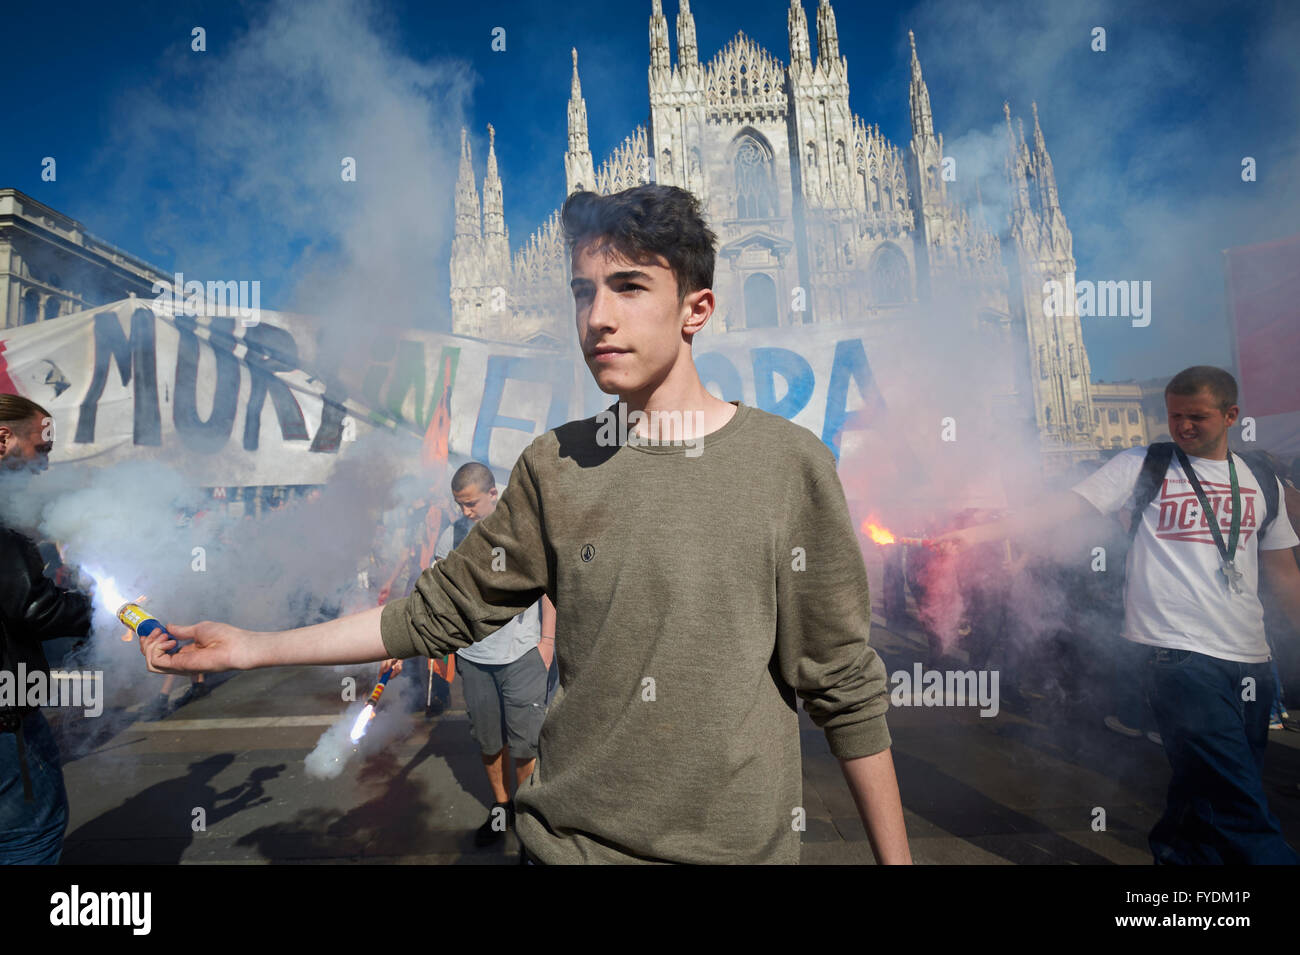 Milan, Italy, 25th April, 2016. No Borders at the Liberation Day Parade in Duomo Square. Credit:  Valeria Ferraro/Alamy - Stock Image